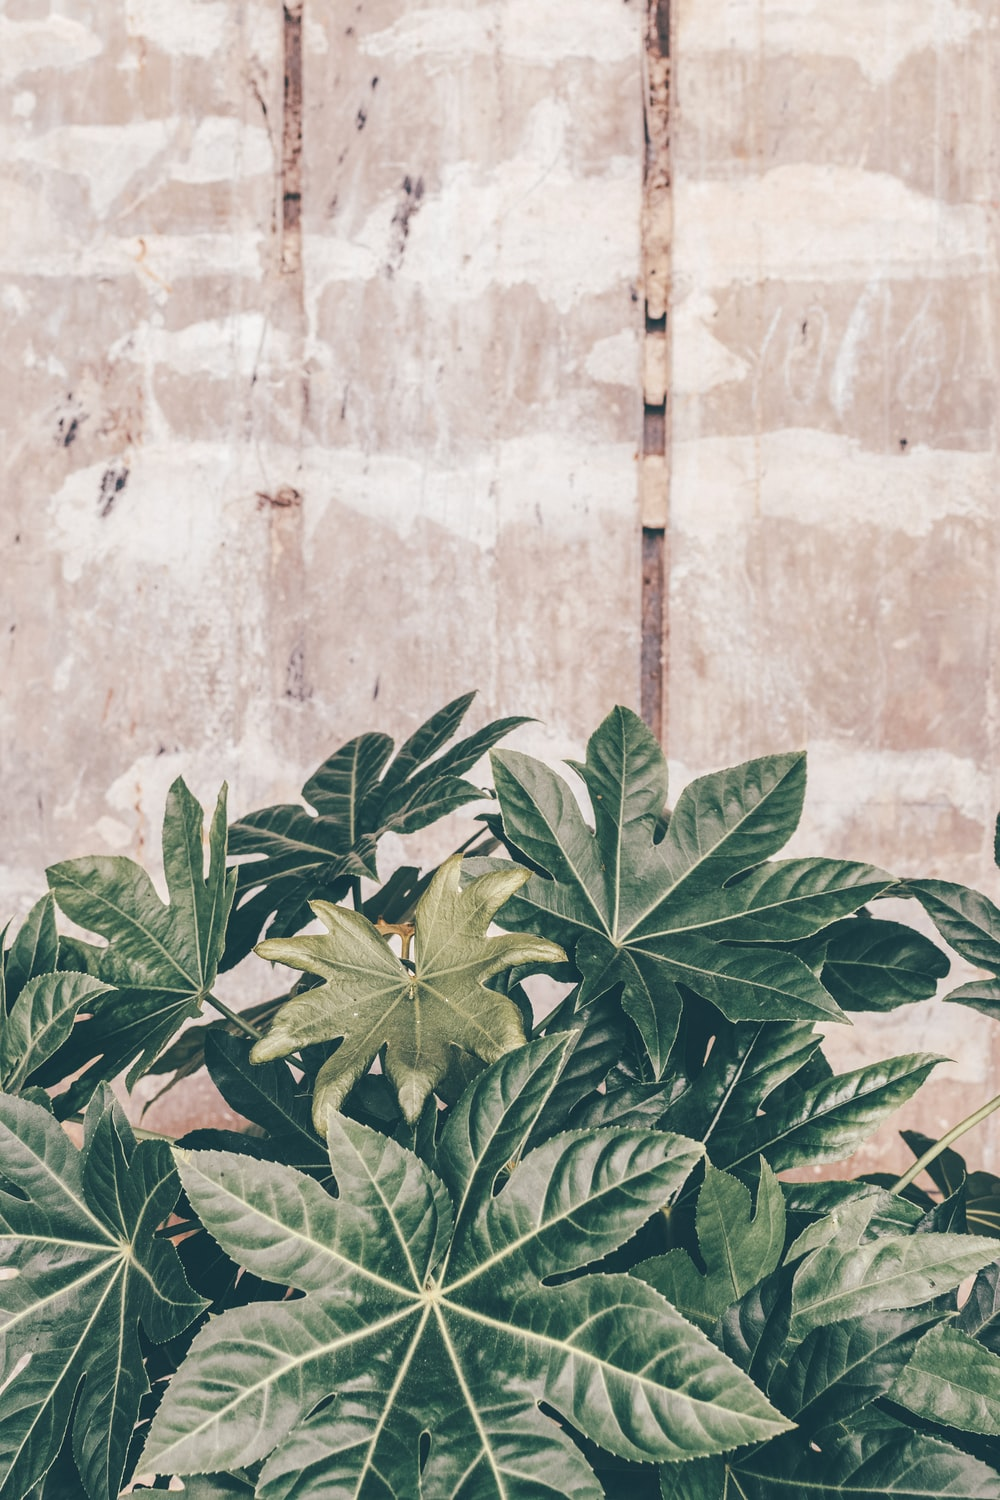 green leaves on brown concrete wall